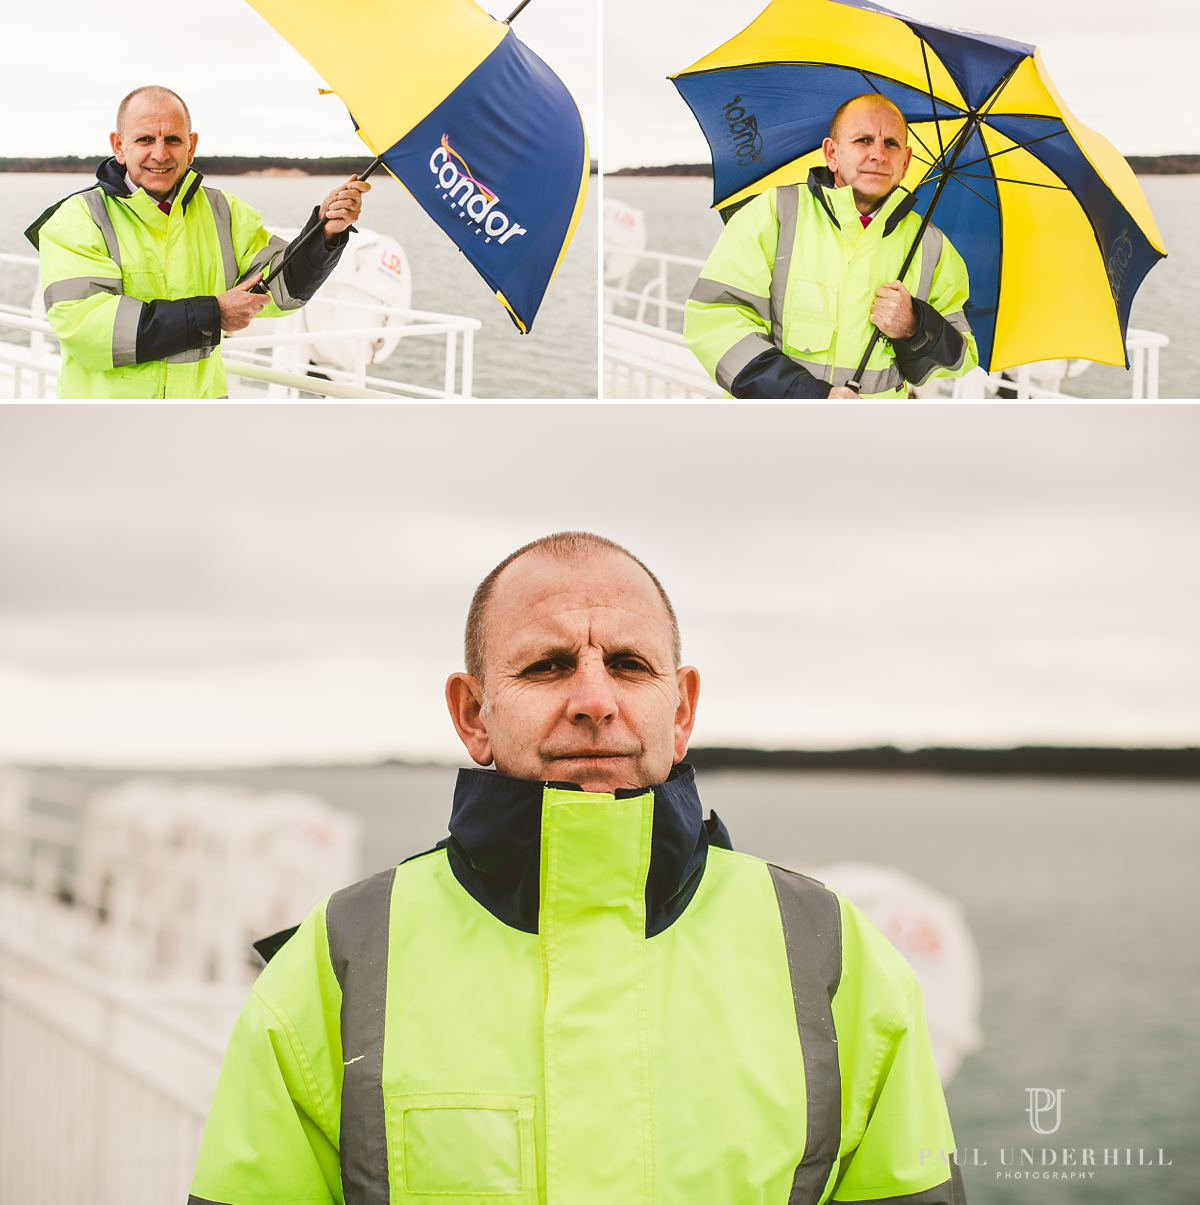 Dorset commercial lifestyle photography